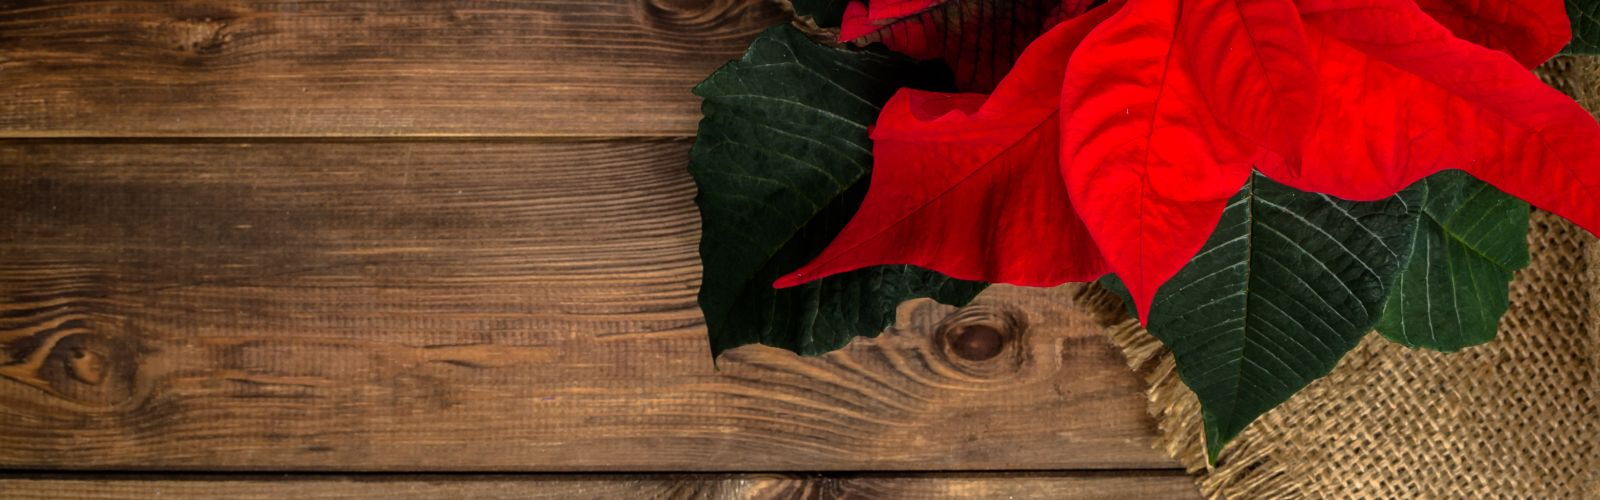 a red poinsettia on a wooden table